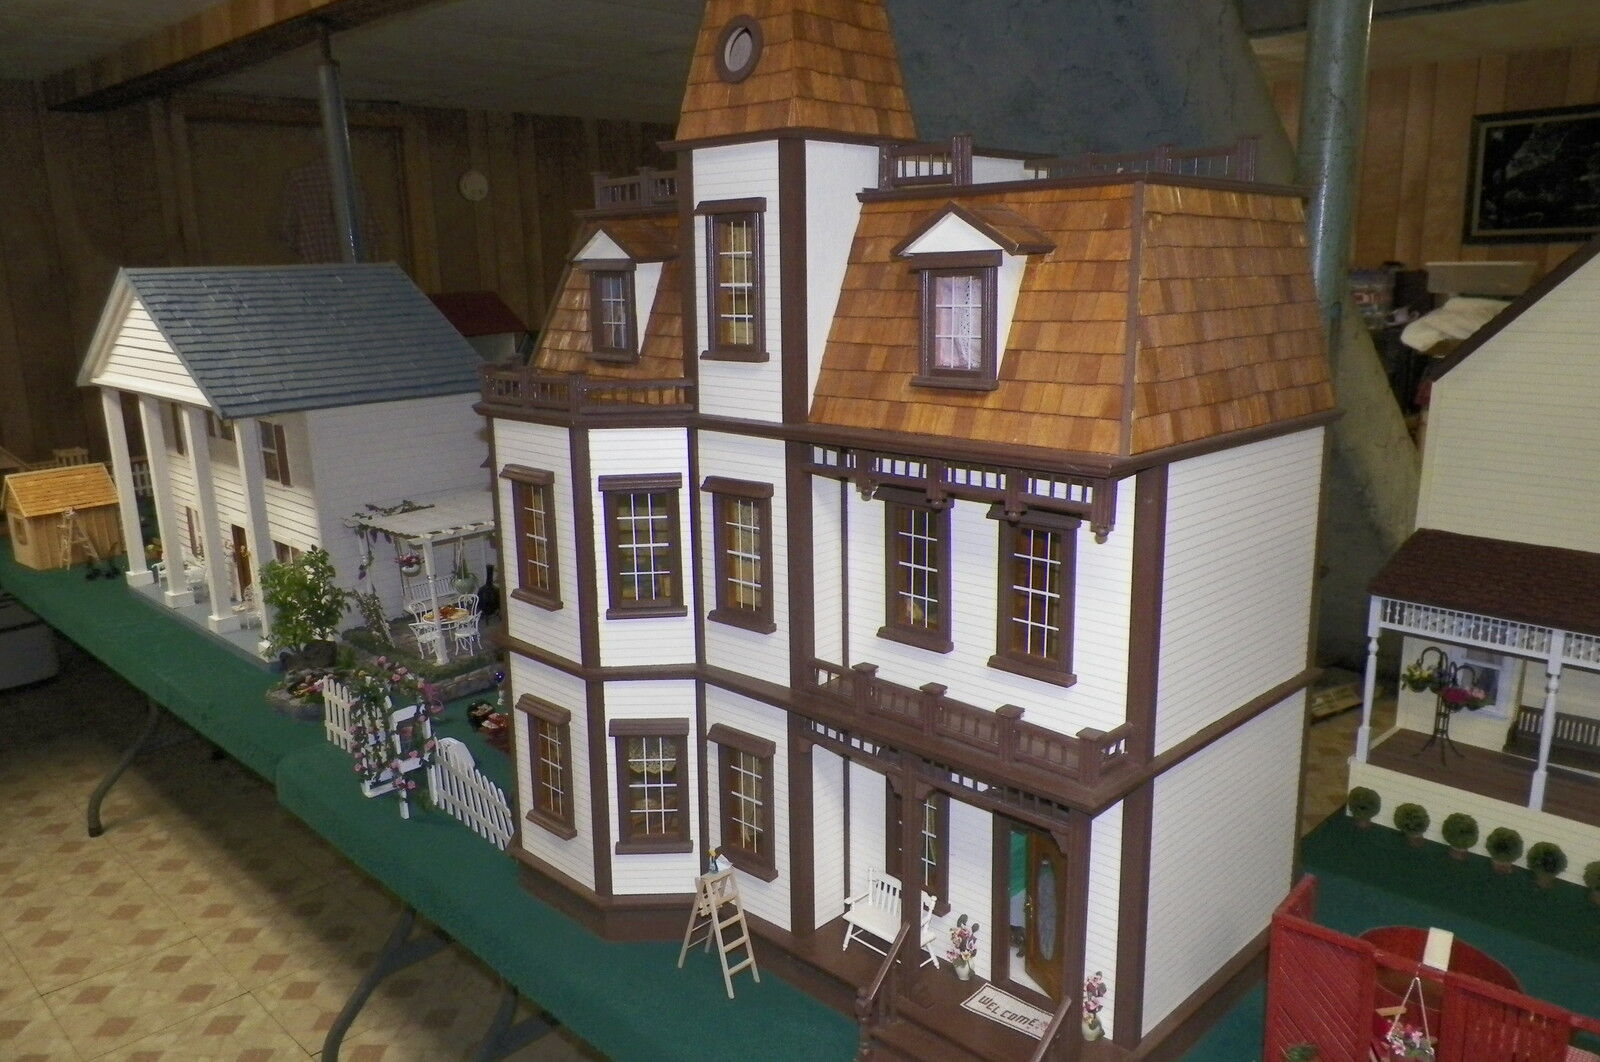 Ddee's Variety and Dollhouse Minis